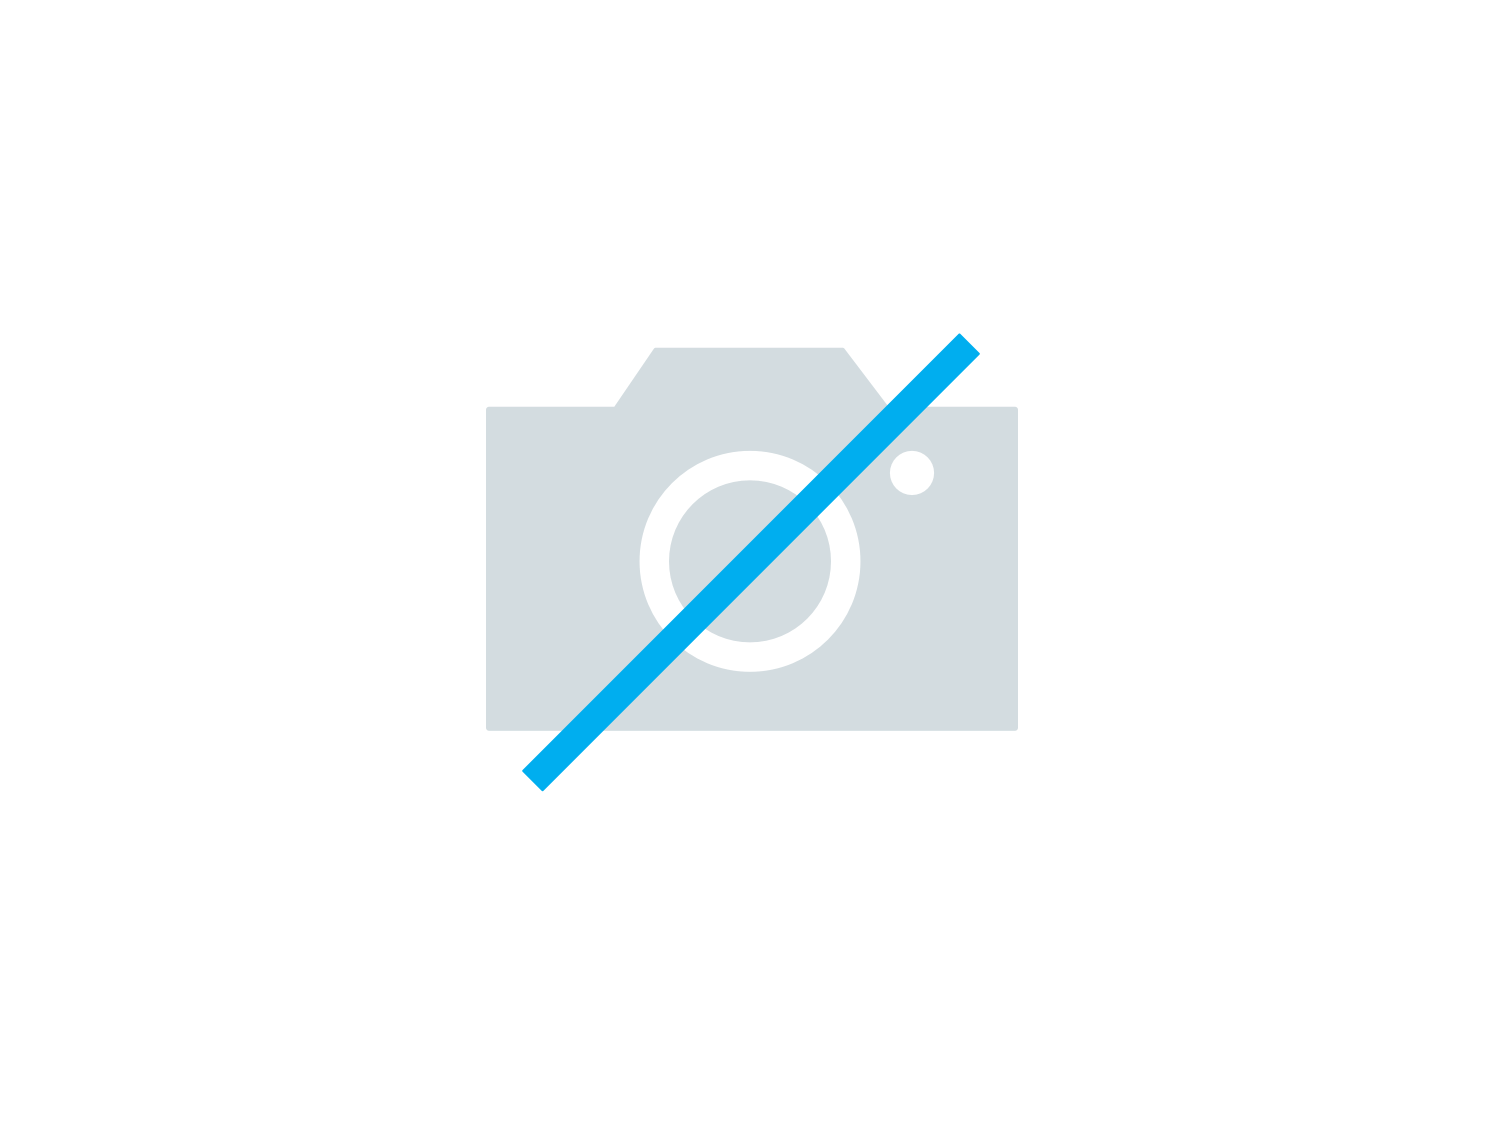 Pedaalemmer NewIcon Brabantia 5L moonlight black